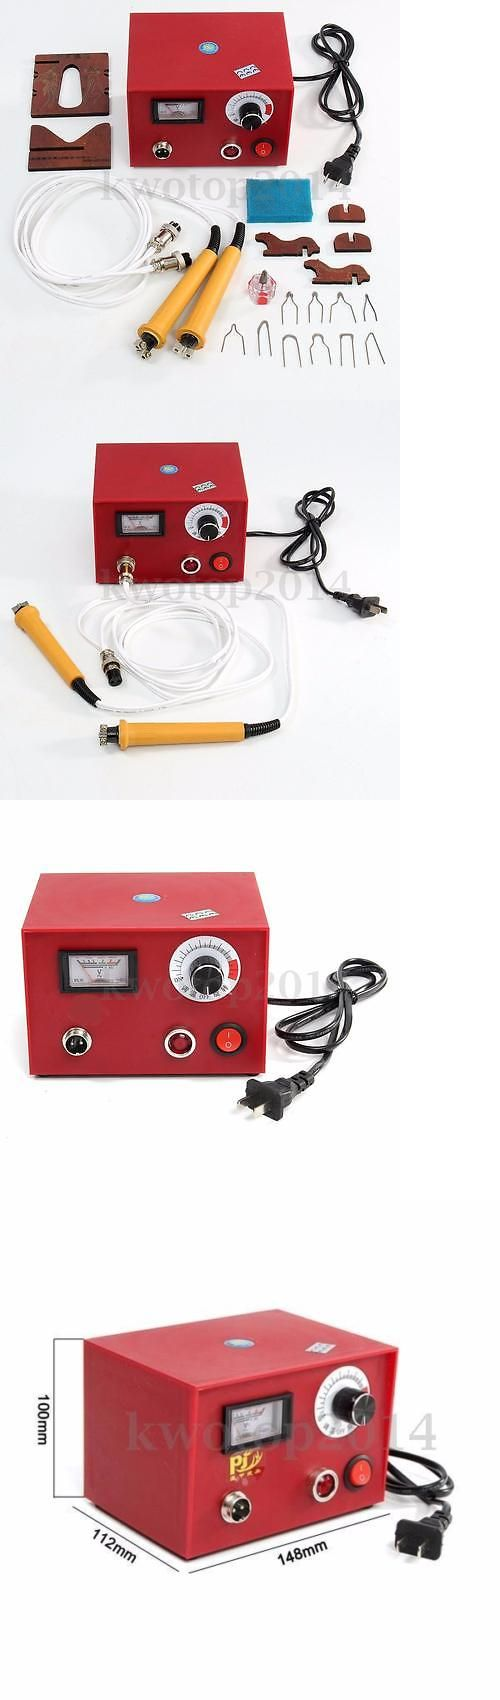 Other Woodworking Supplies 183161: 220V 50W Multifunction Laser Pyrography Machine Gourd Wood Crafts Tool Kit -> BUY IT NOW ONLY: $57.99 on eBay!